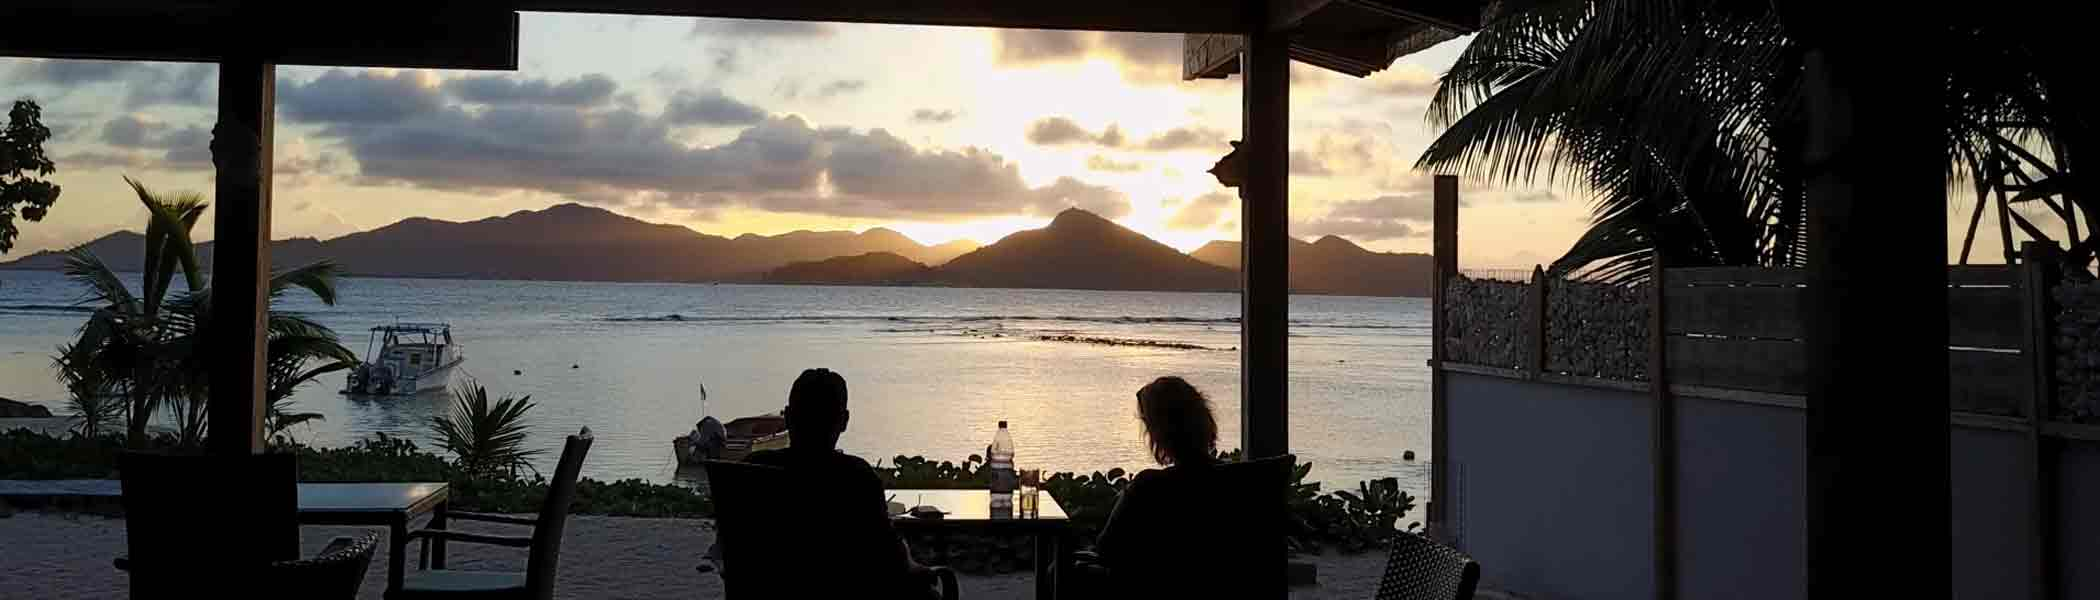 le-bon-coin, Bars and restaurants in Seychelles Islands